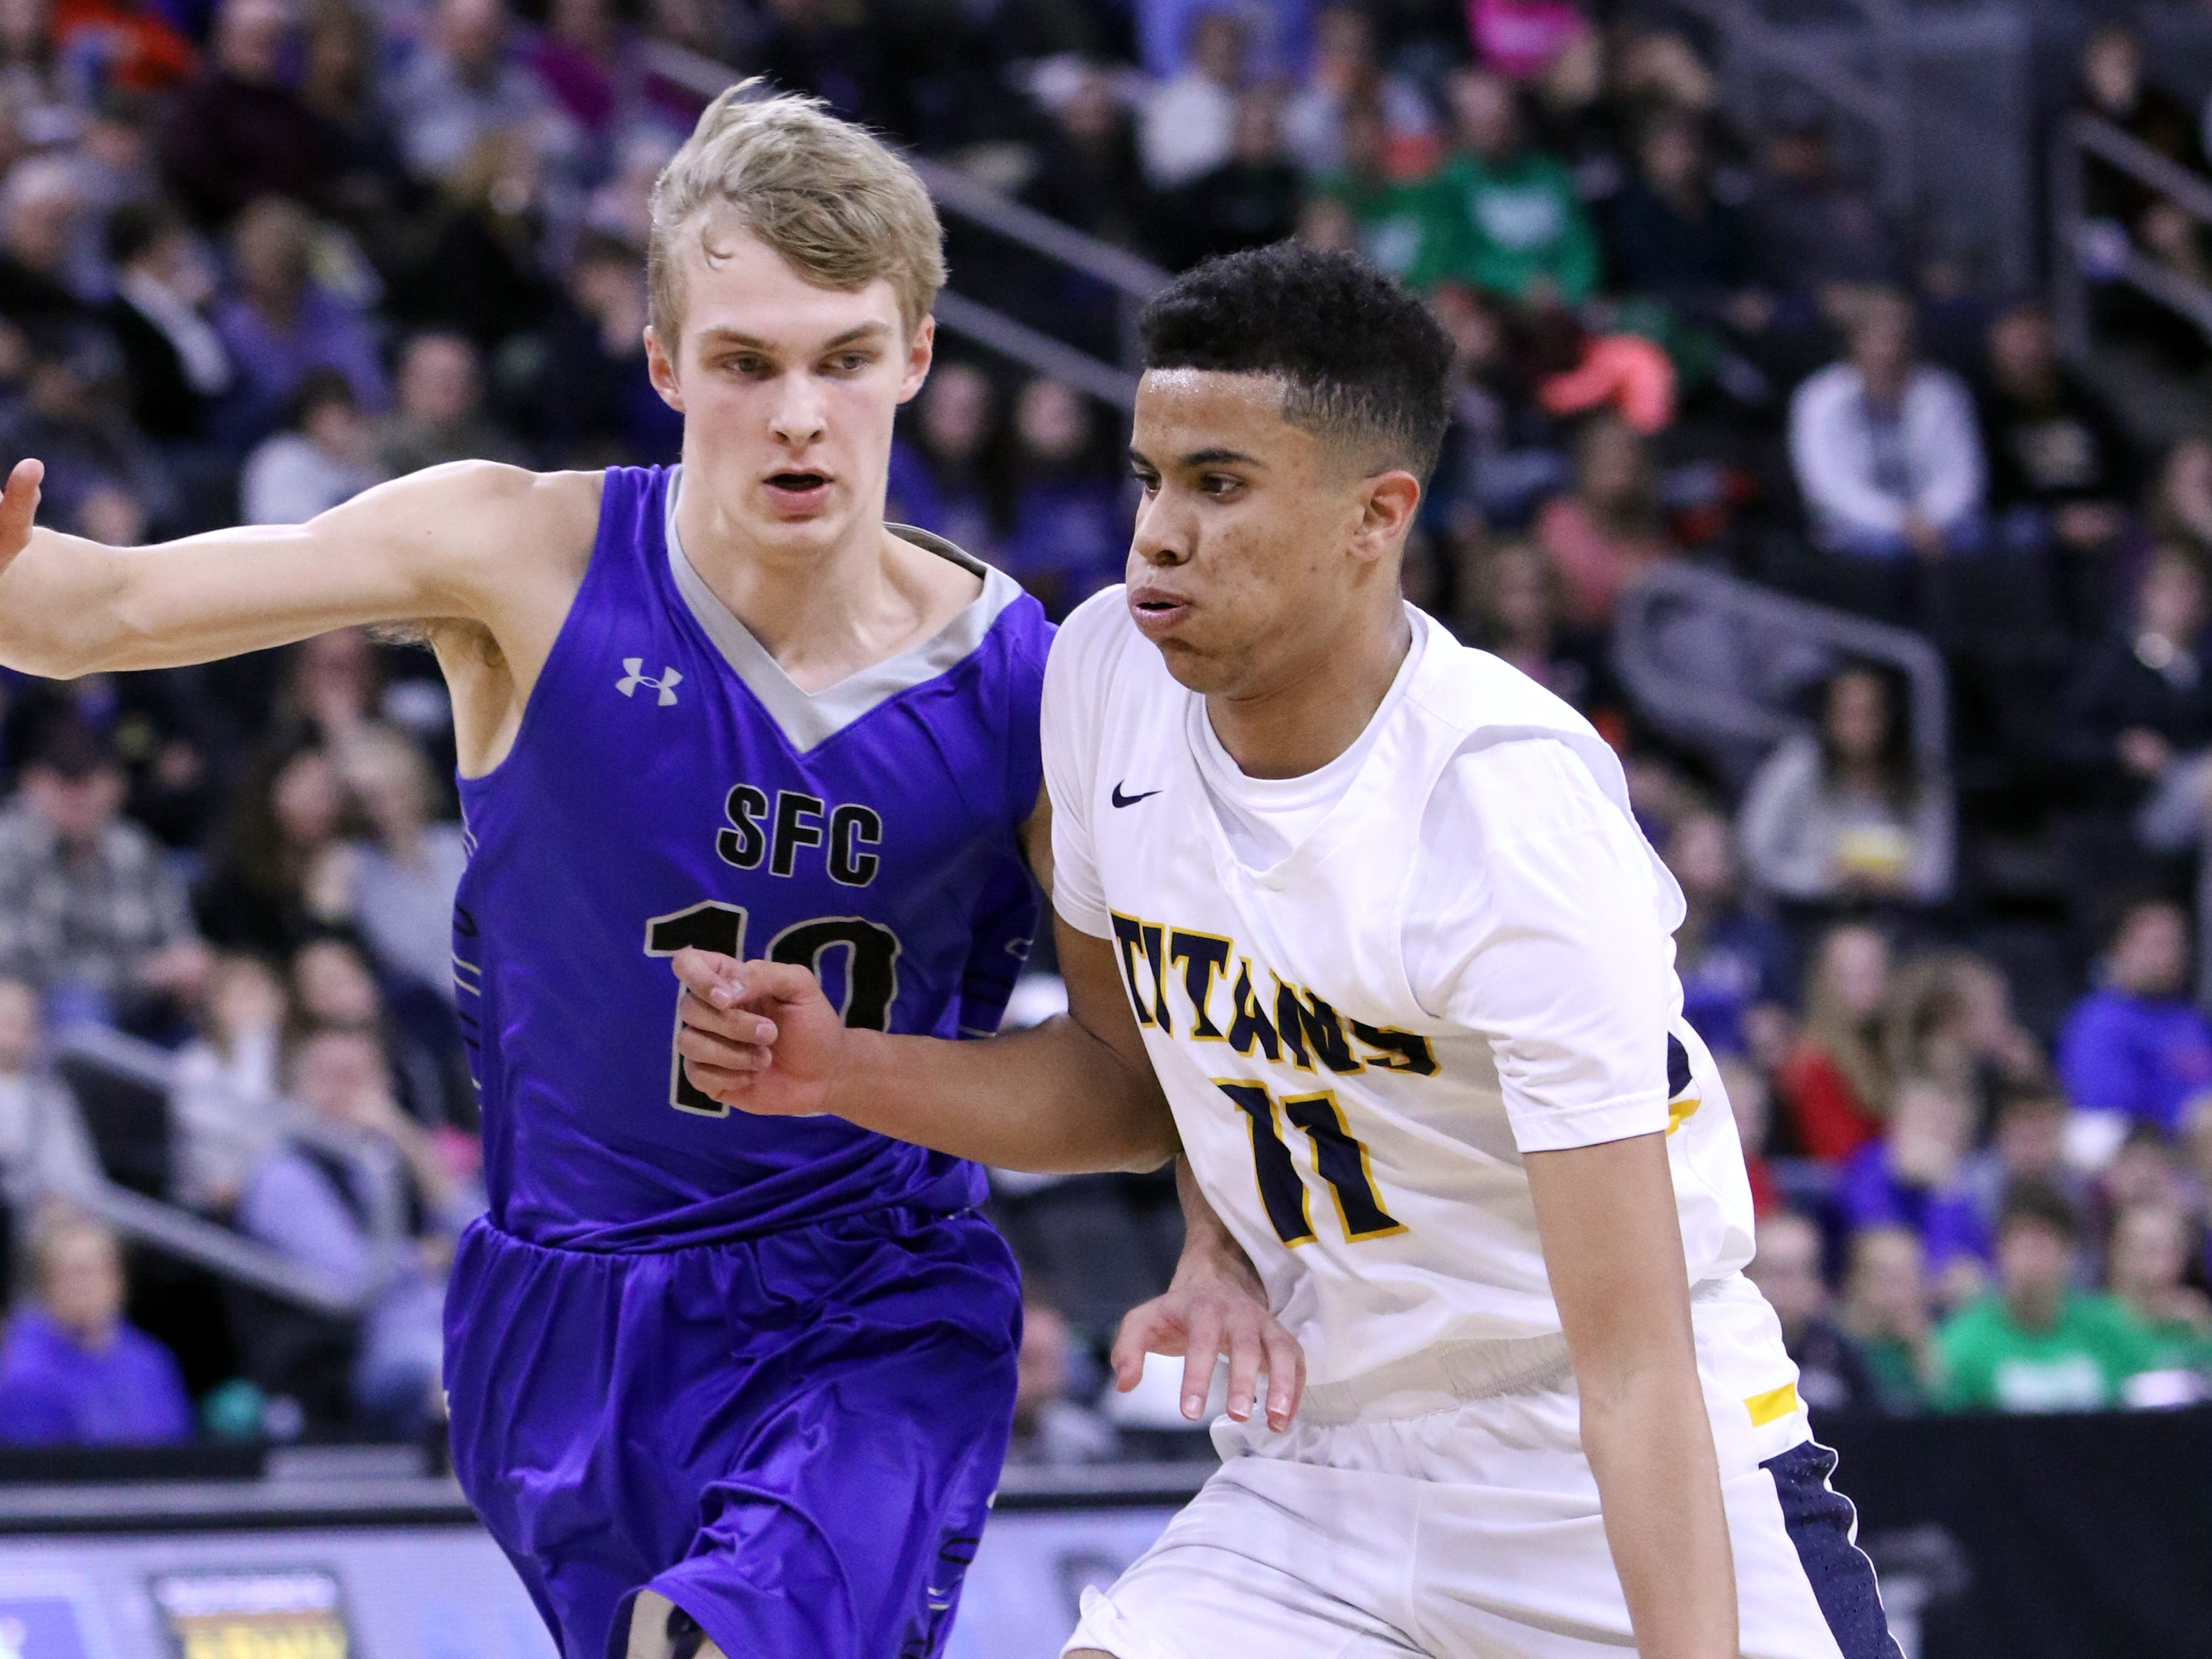 Justin Hohnr of Tea Area gets pressure from Mitchell Oostra of Sioux Falls Christian during Saturday's Class A title game at the Premier Center.